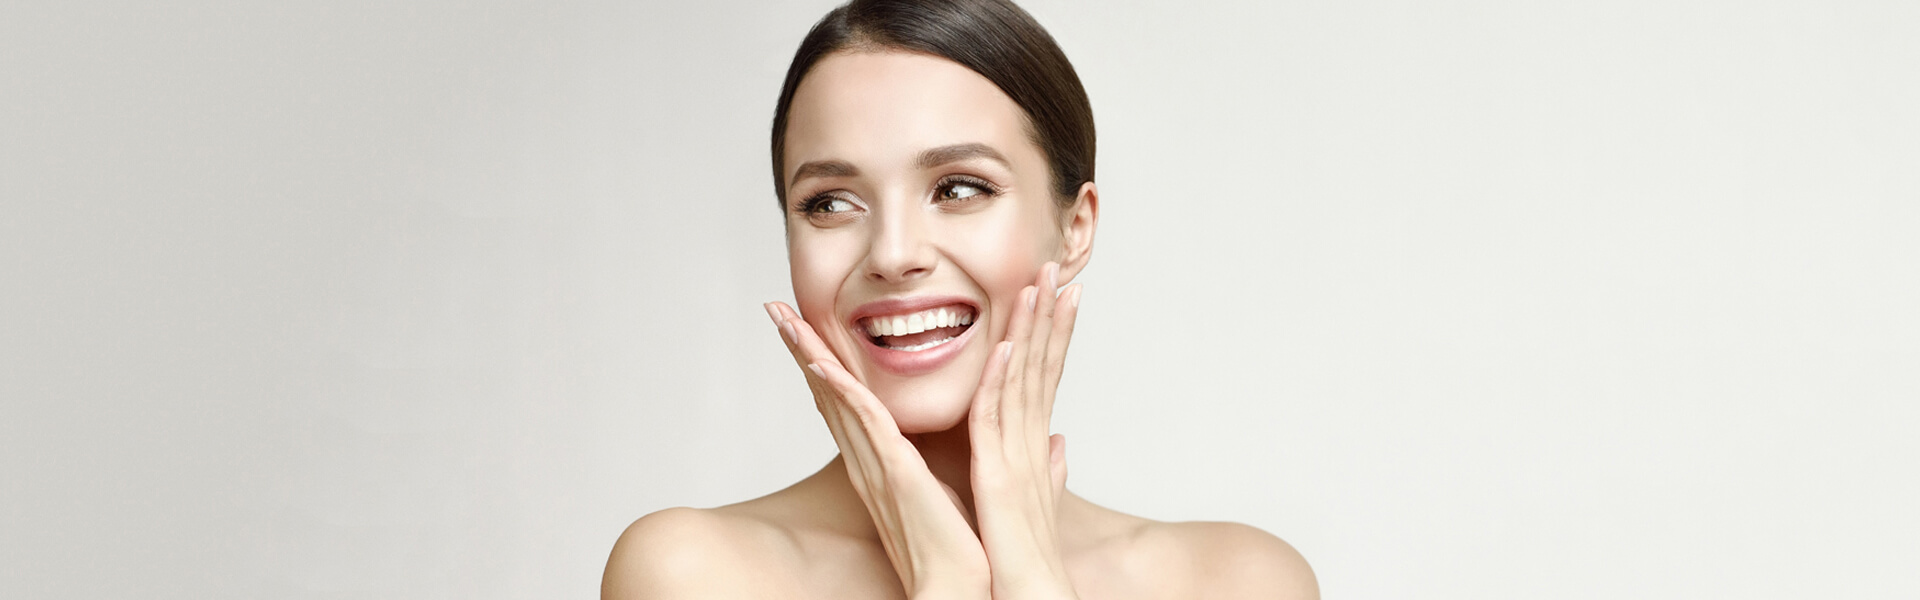 Cosmetic Dentistry Services and Their Significance